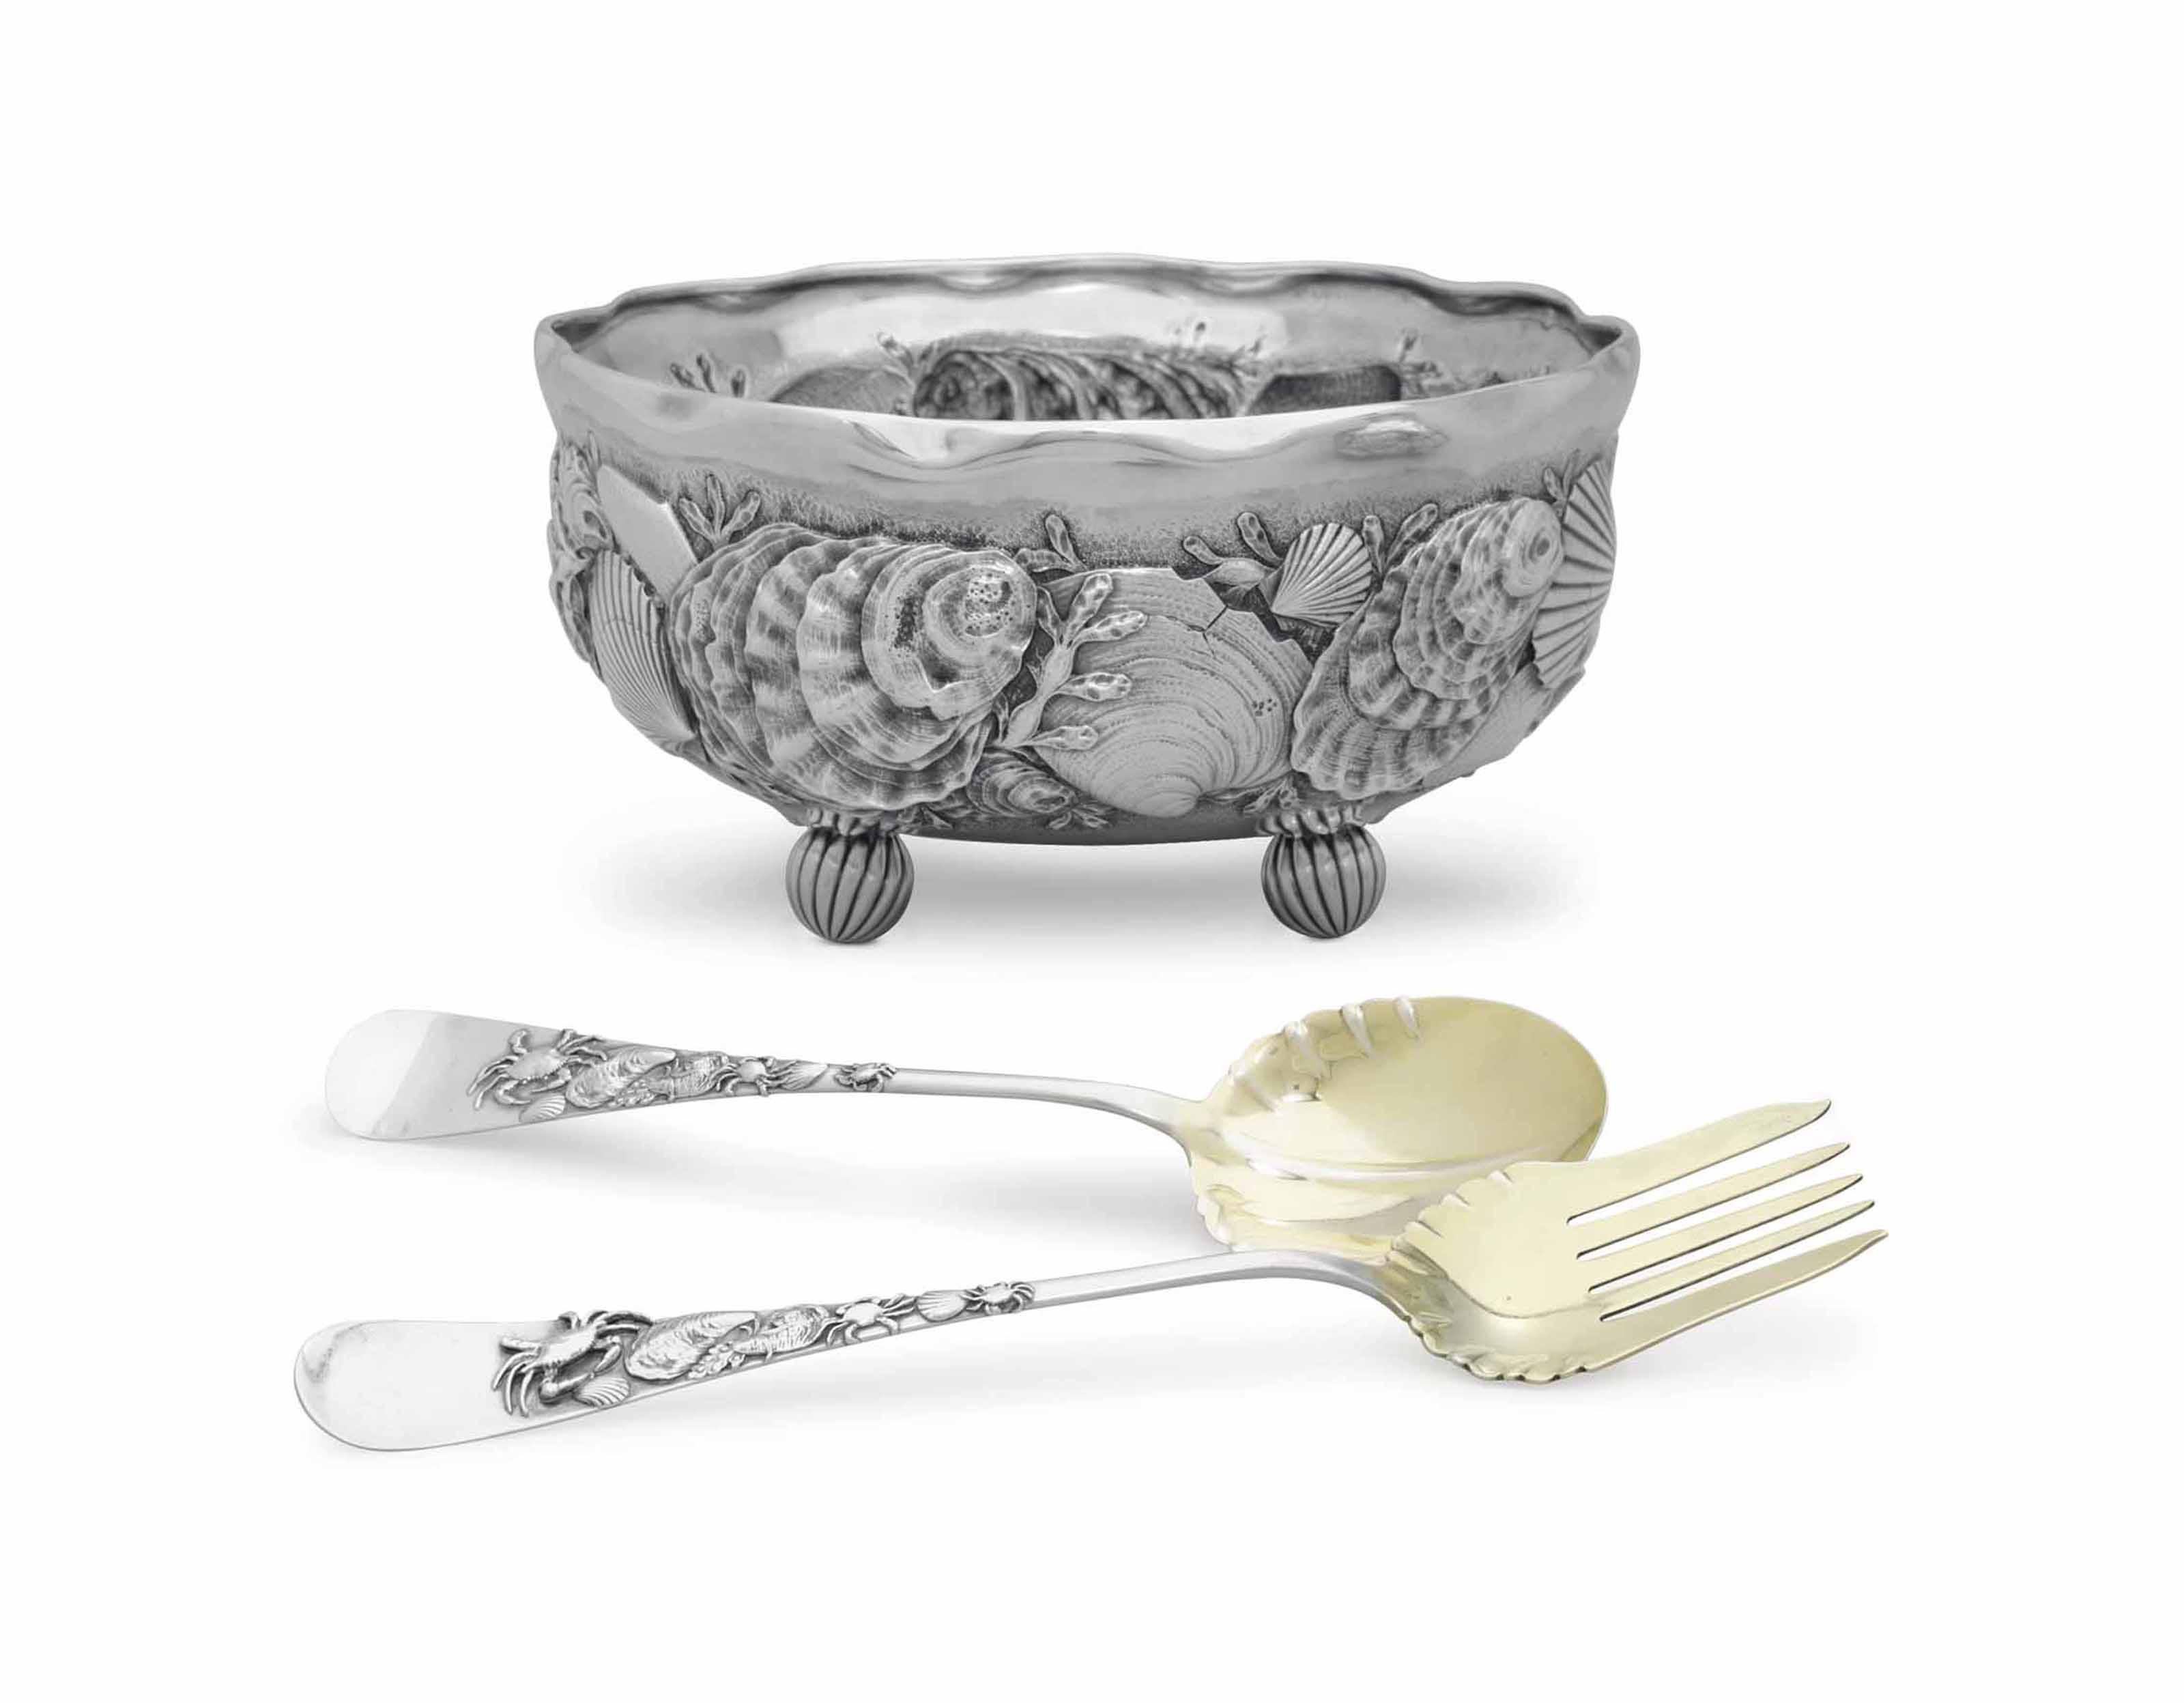 A SILVER BOWL WITH PARCEL-GILT SILVER FORK AND SPOON